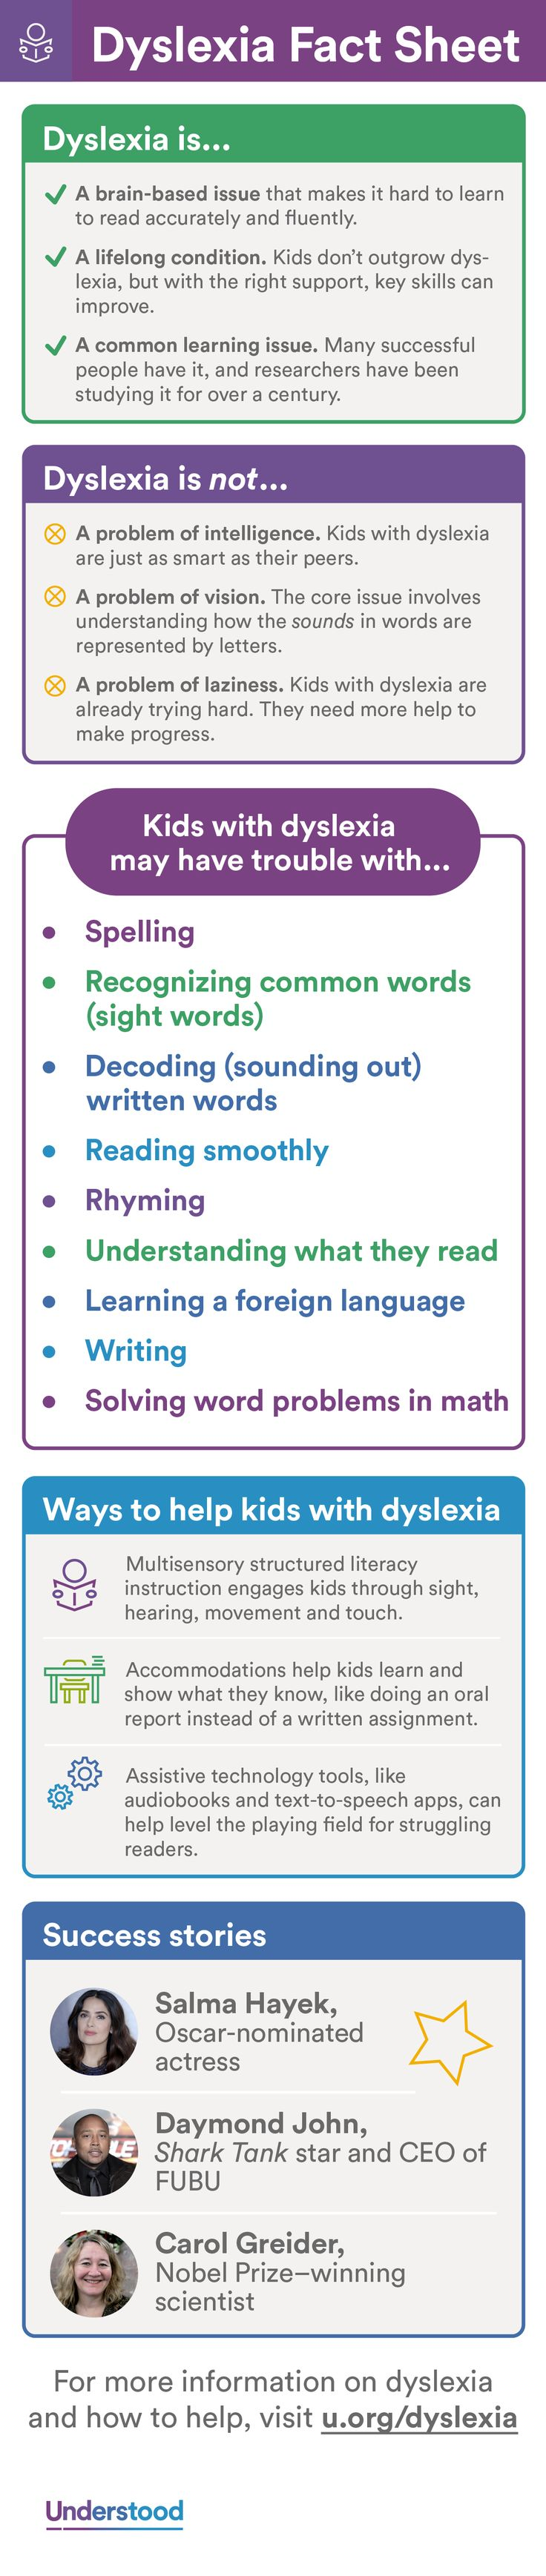 What is dyslexia? This fact sheet provides essential information for beginners. Click to download and print.